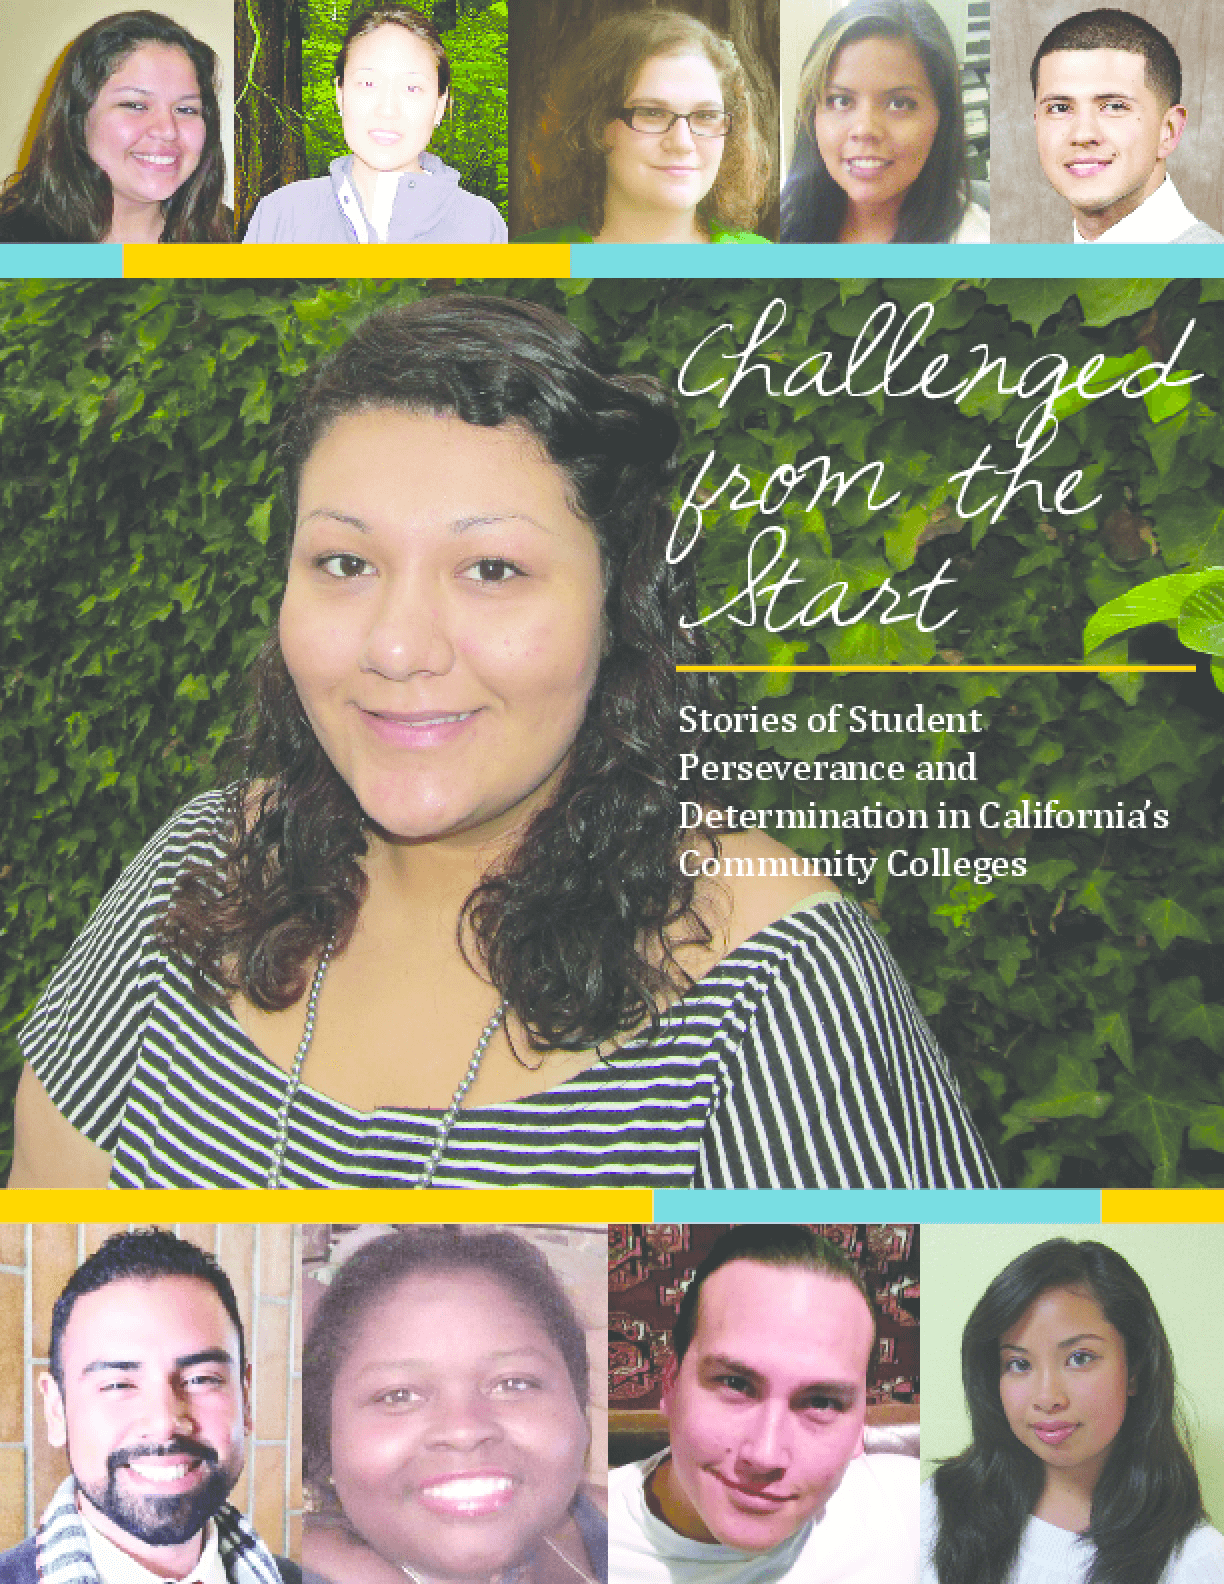 Challenged From the Start: Stories of Student Perseverance and Determination in California's Community Colleges